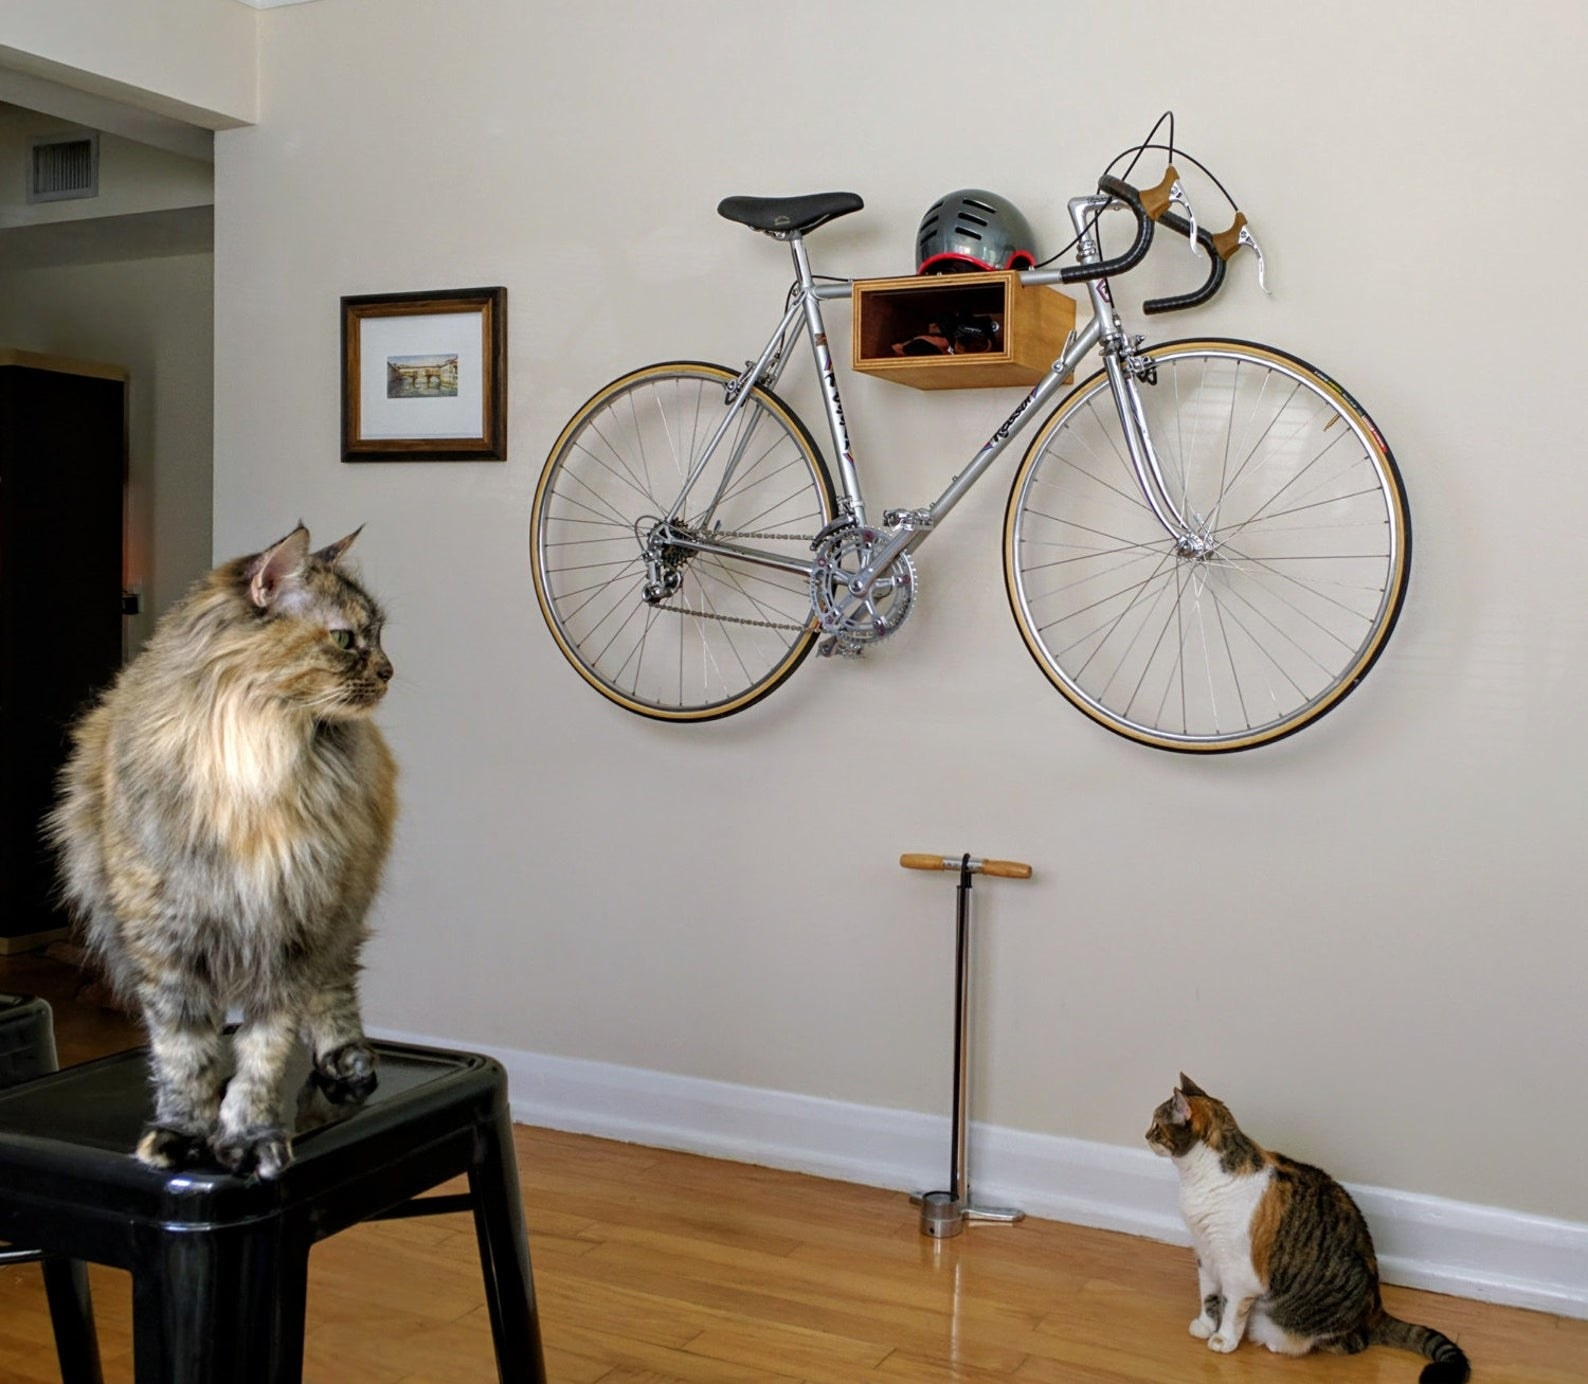 A wooden bike rack mounted to the wall with bike hanging from it